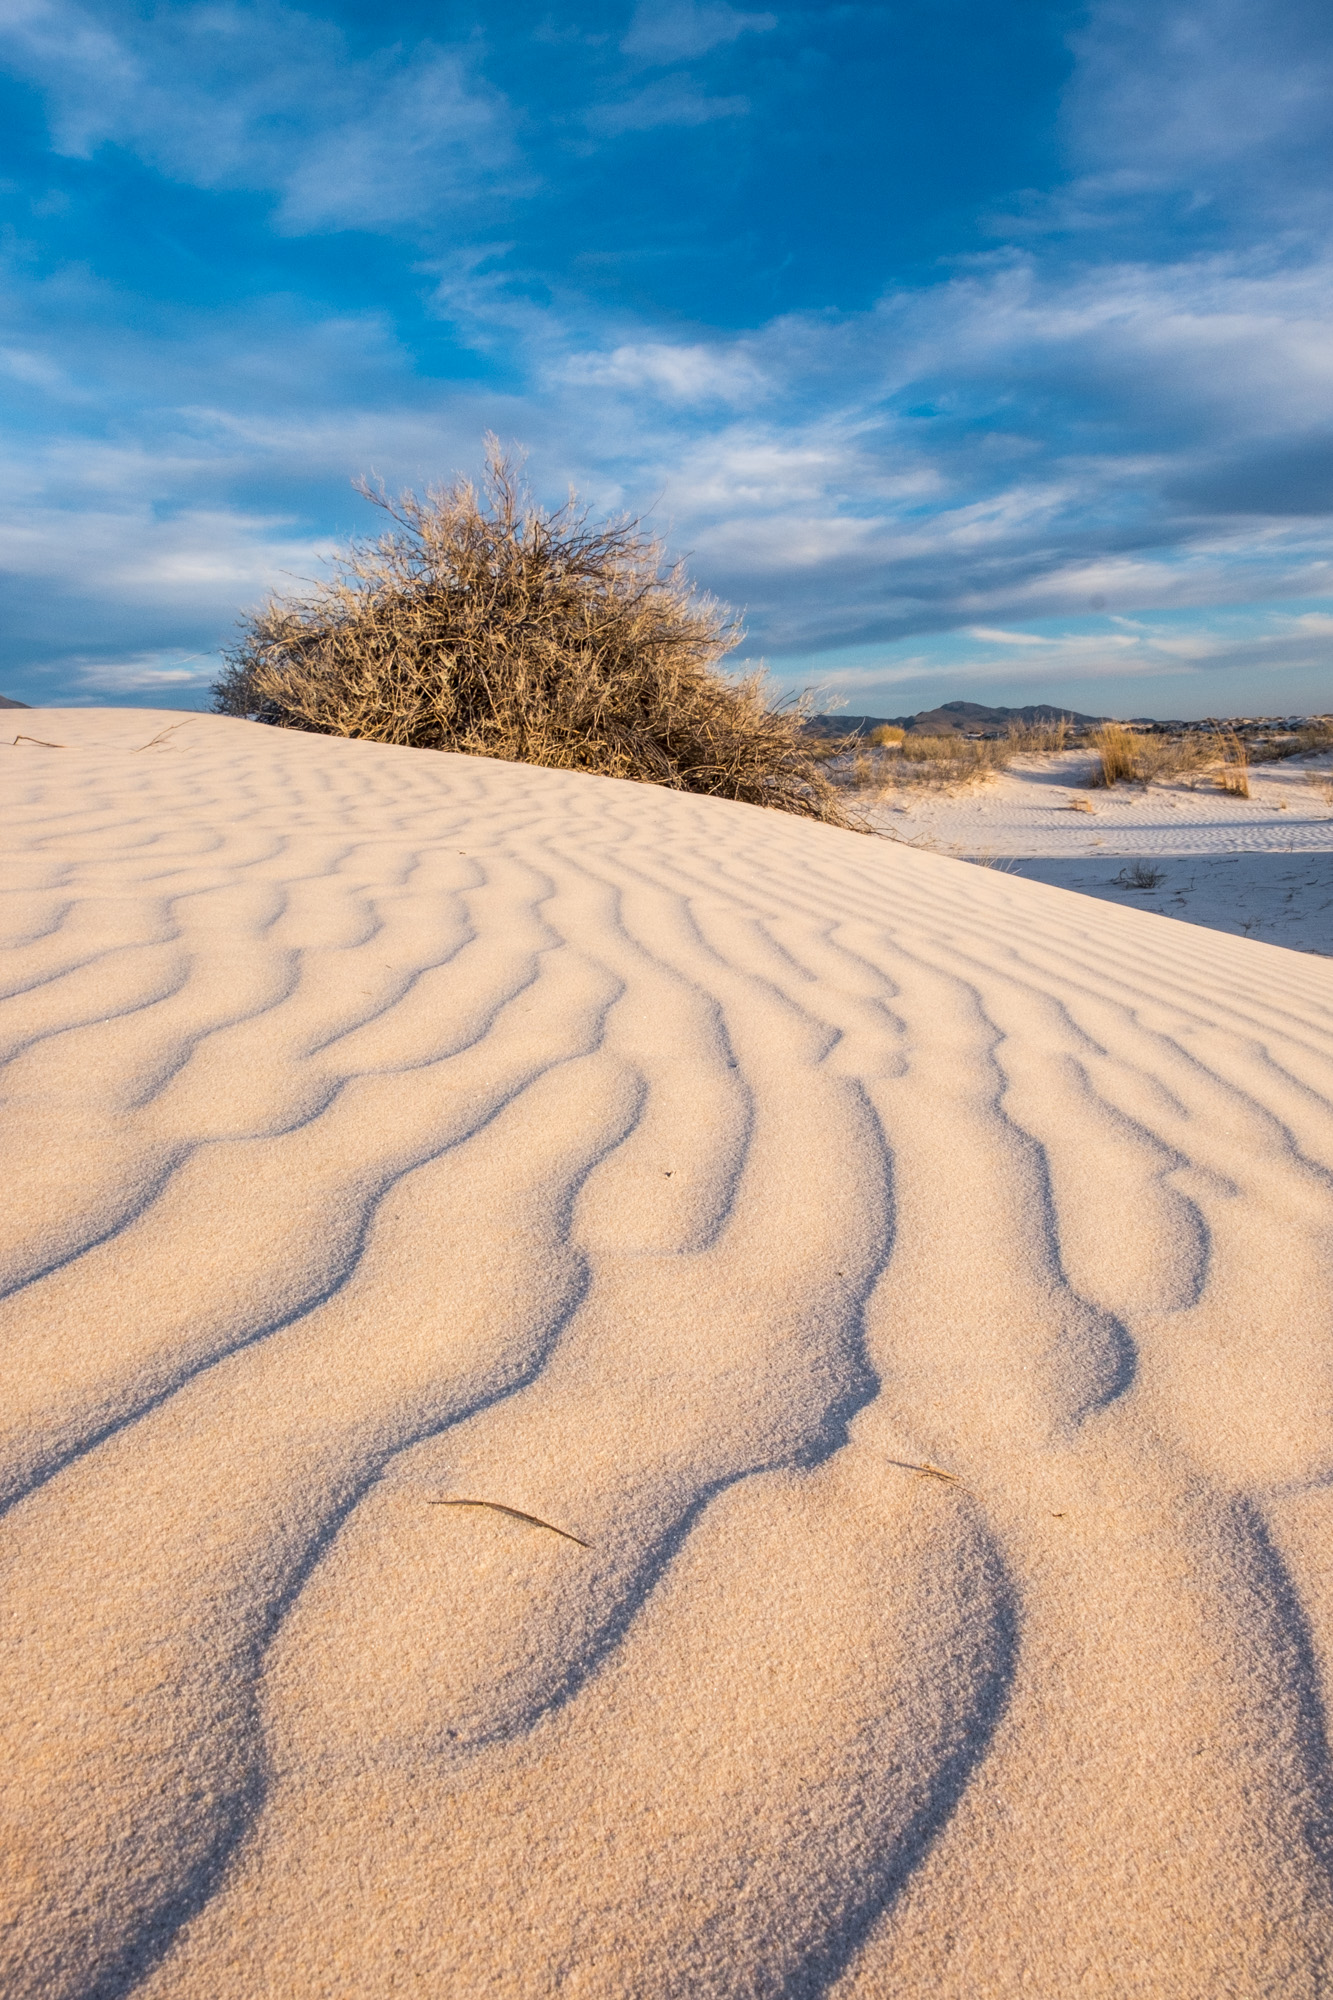 Textures at the Salt Basin Sand Dunes.